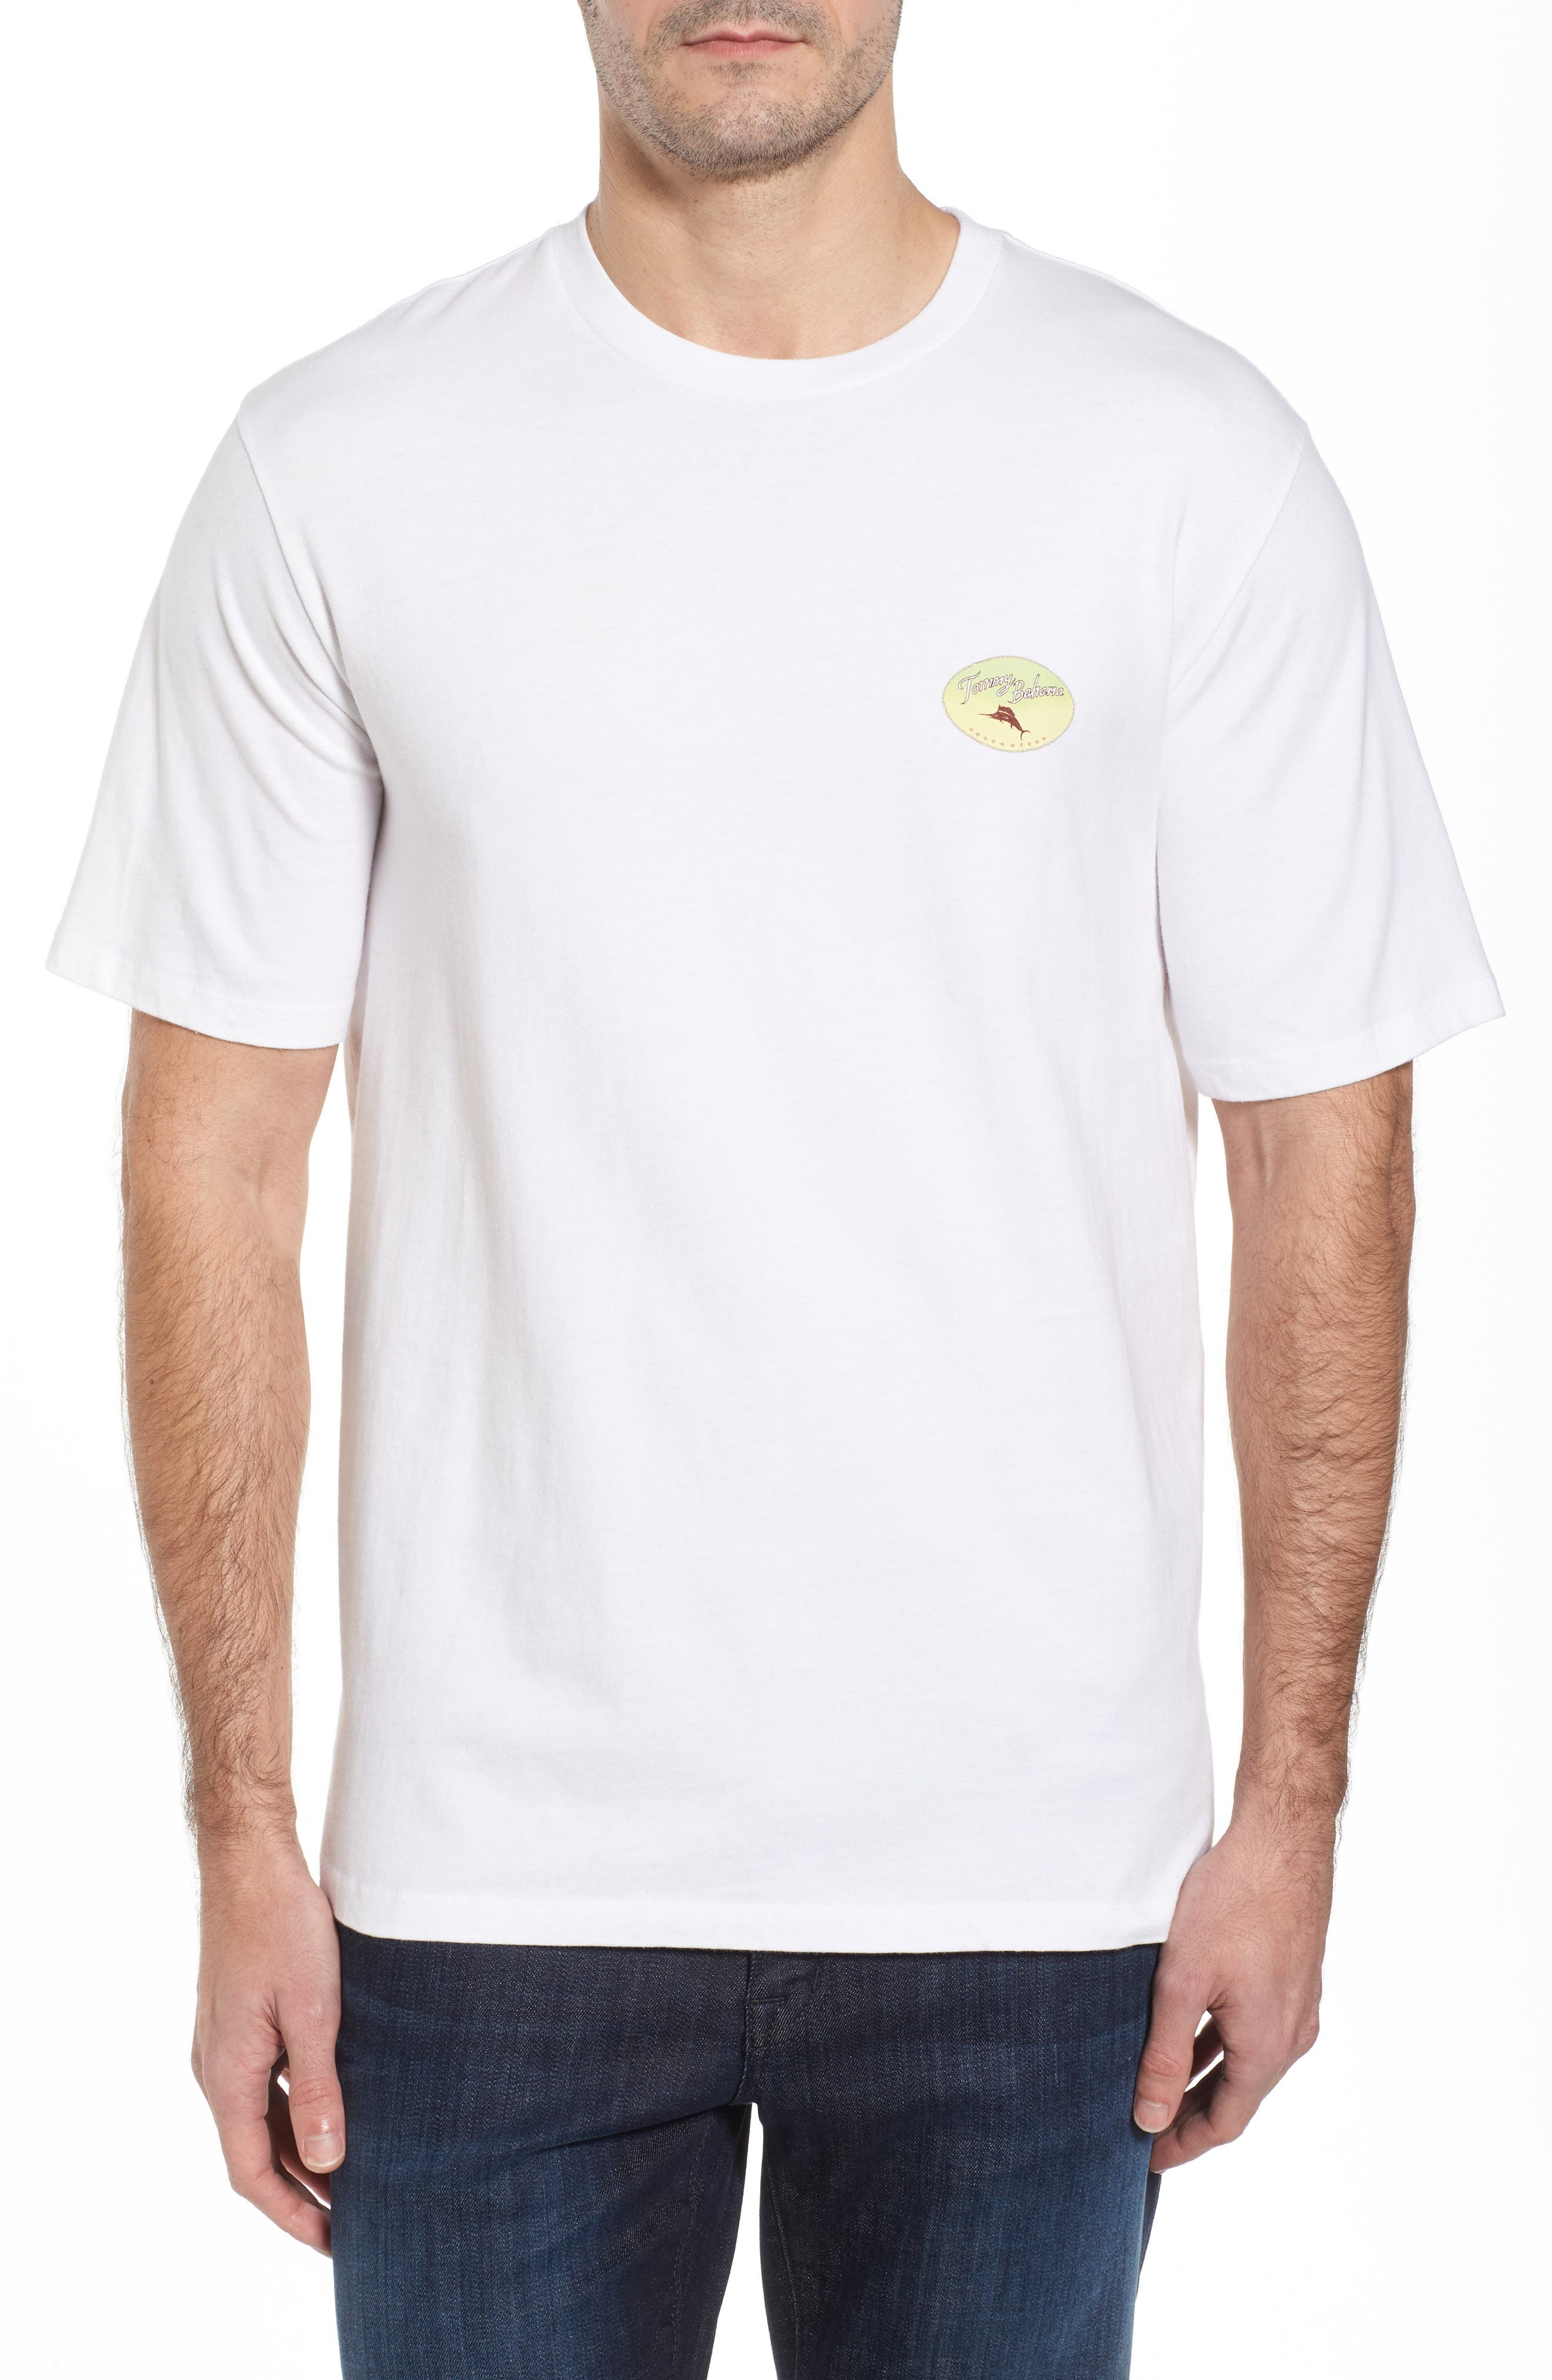 Improve Your Swing T-Shirt,                         Main,                         color, 100